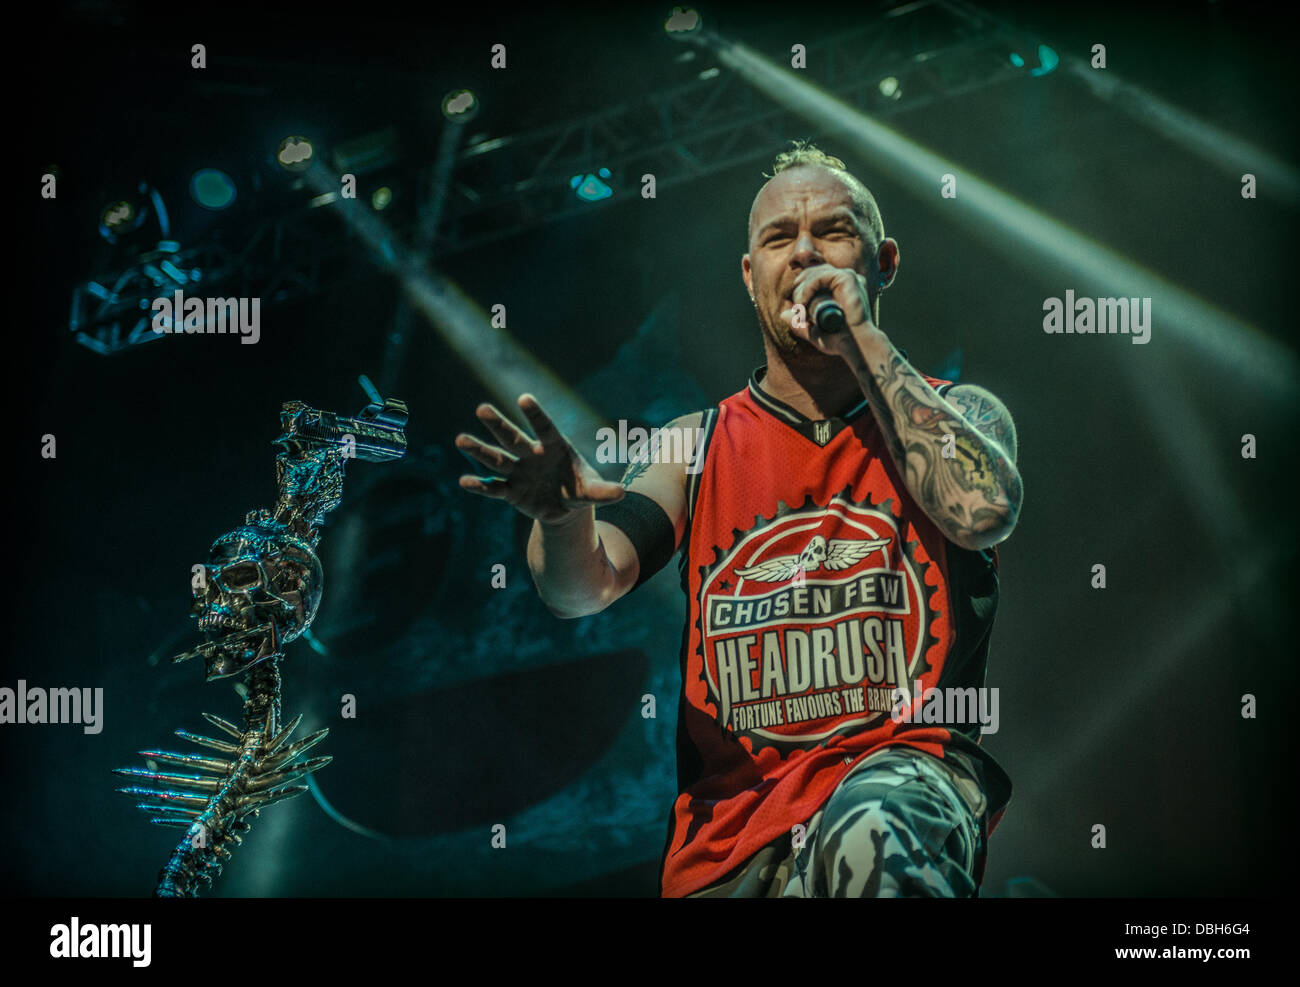 heavy metal band five finger death punch performing live